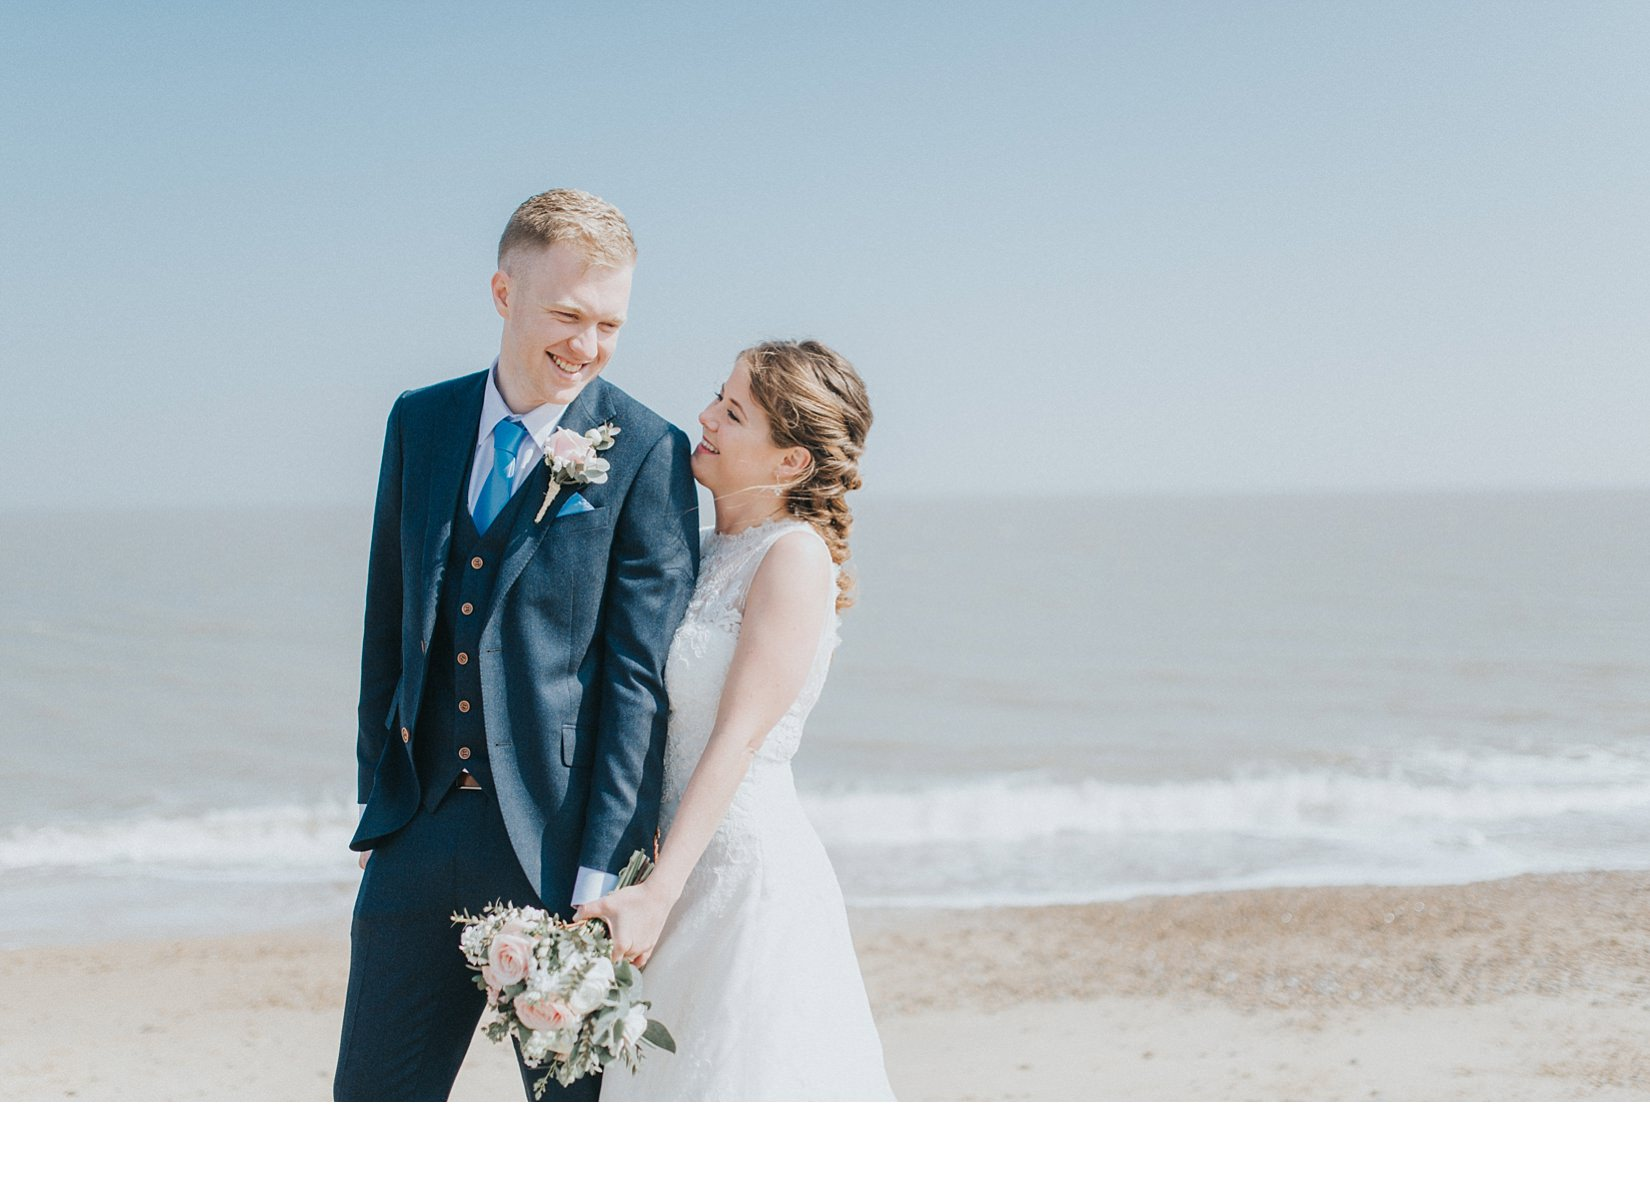 Pretty Pronovias Spring Seaside Wedding by Kate Waters Photography